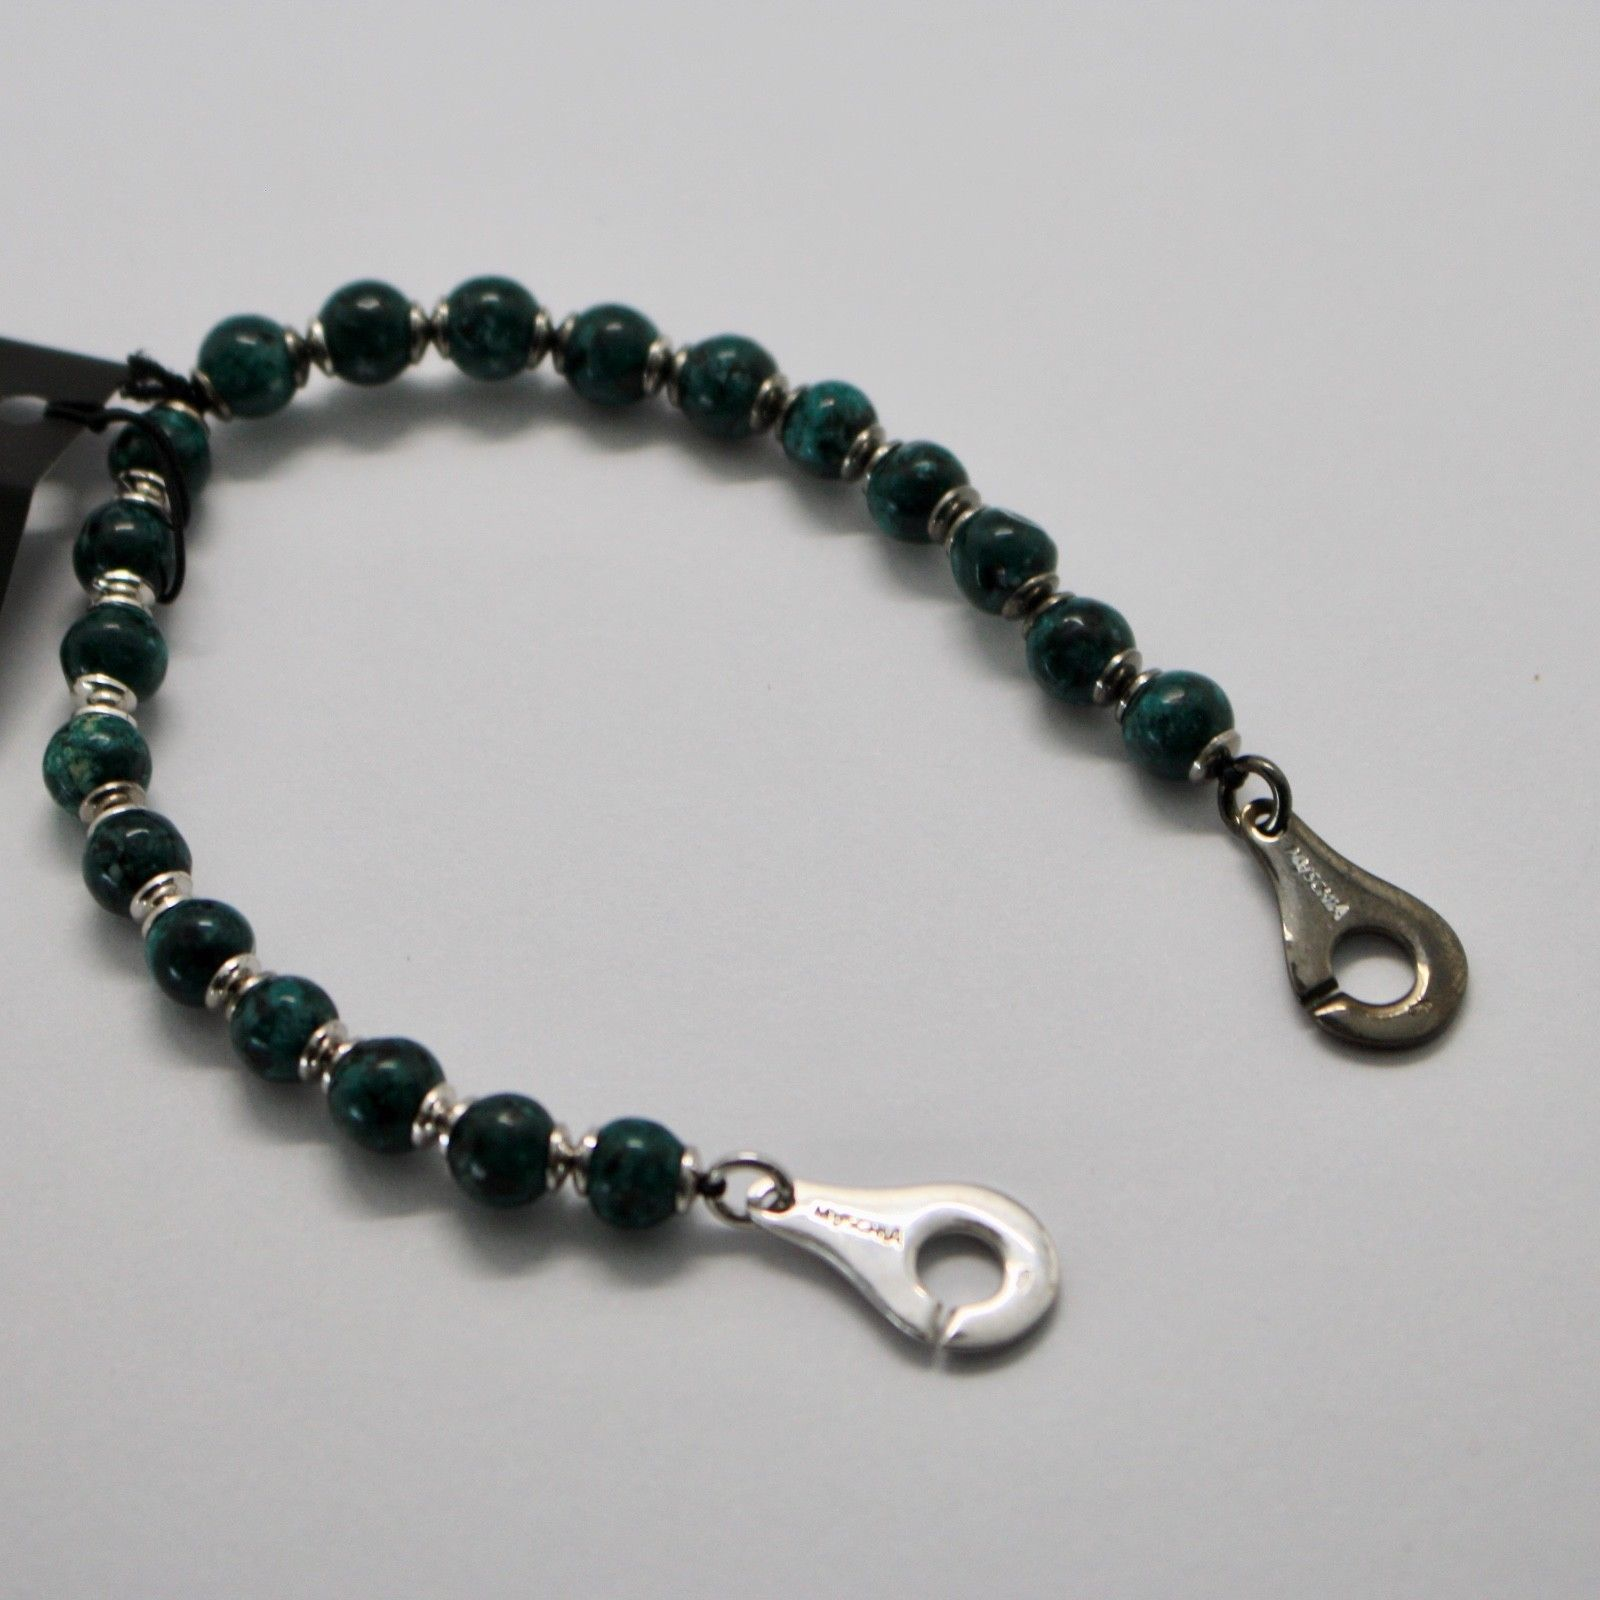 Silver 925 Bracelet with Green Jasper BSP-2 Made in Italy by Maschia